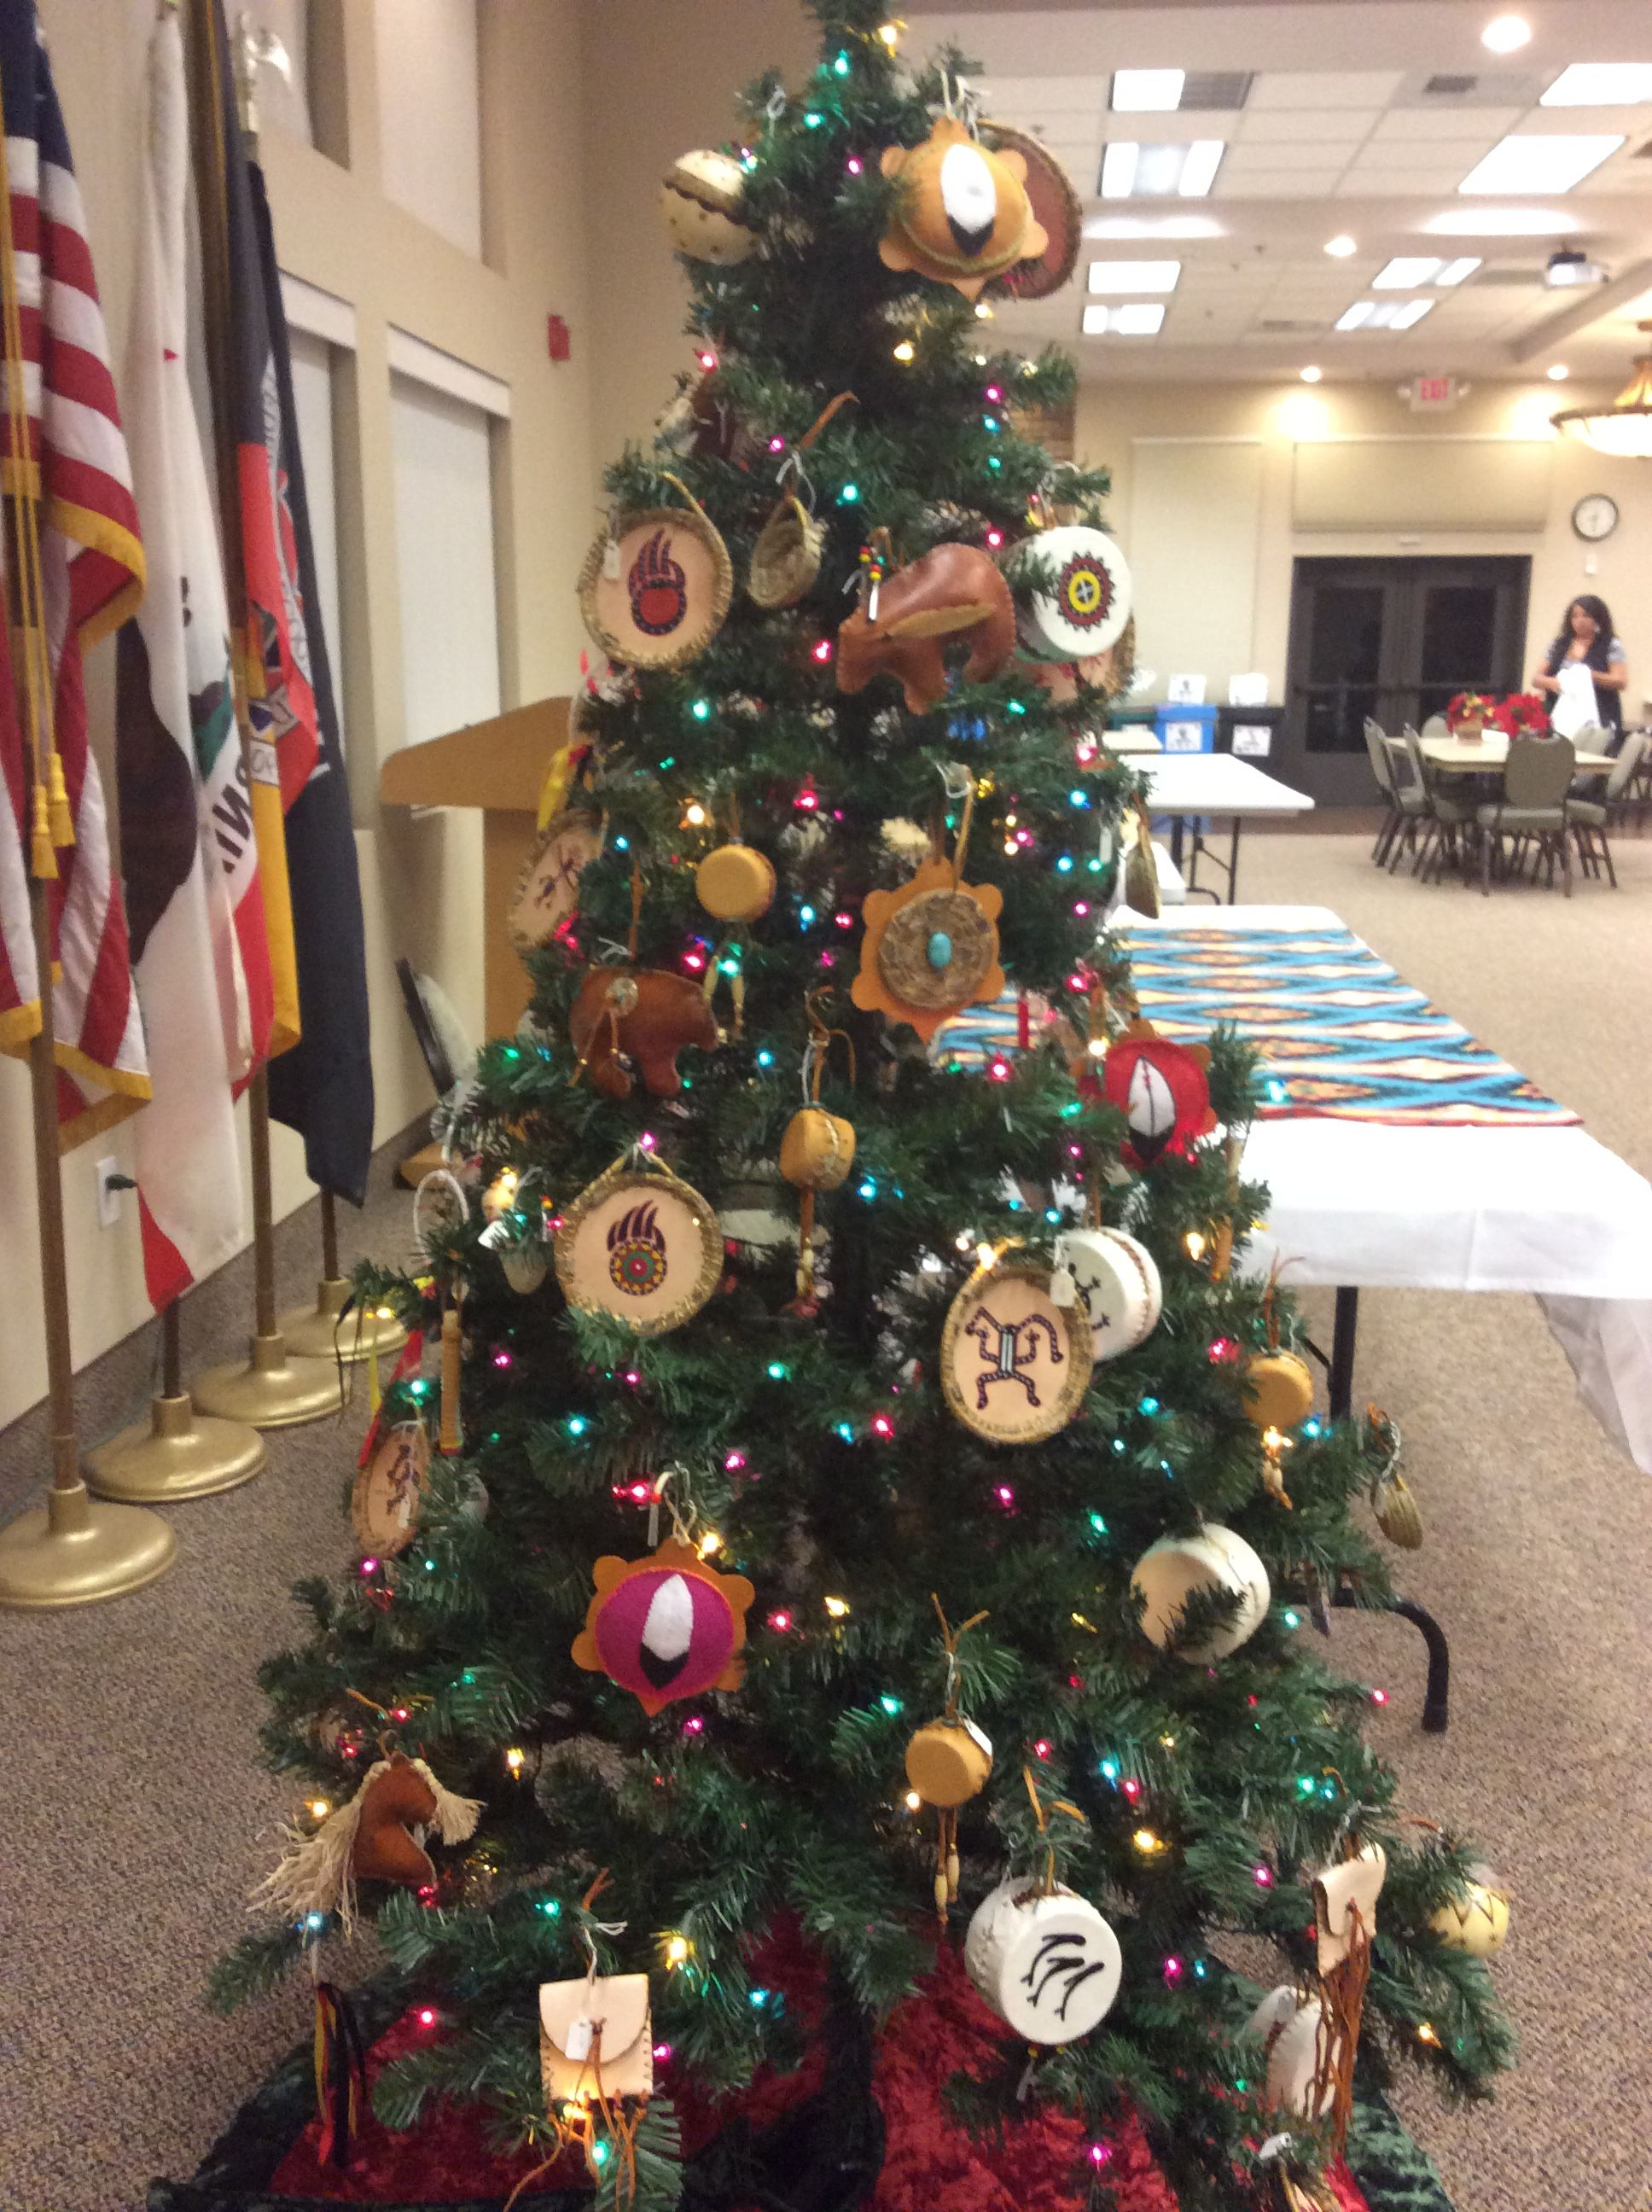 All Hand Crafted Native American Christmas Tree Ornaments By Pita Romero Ma Christmas Craft Fair Decorating With Christmas Lights Christmas Ornaments To Make